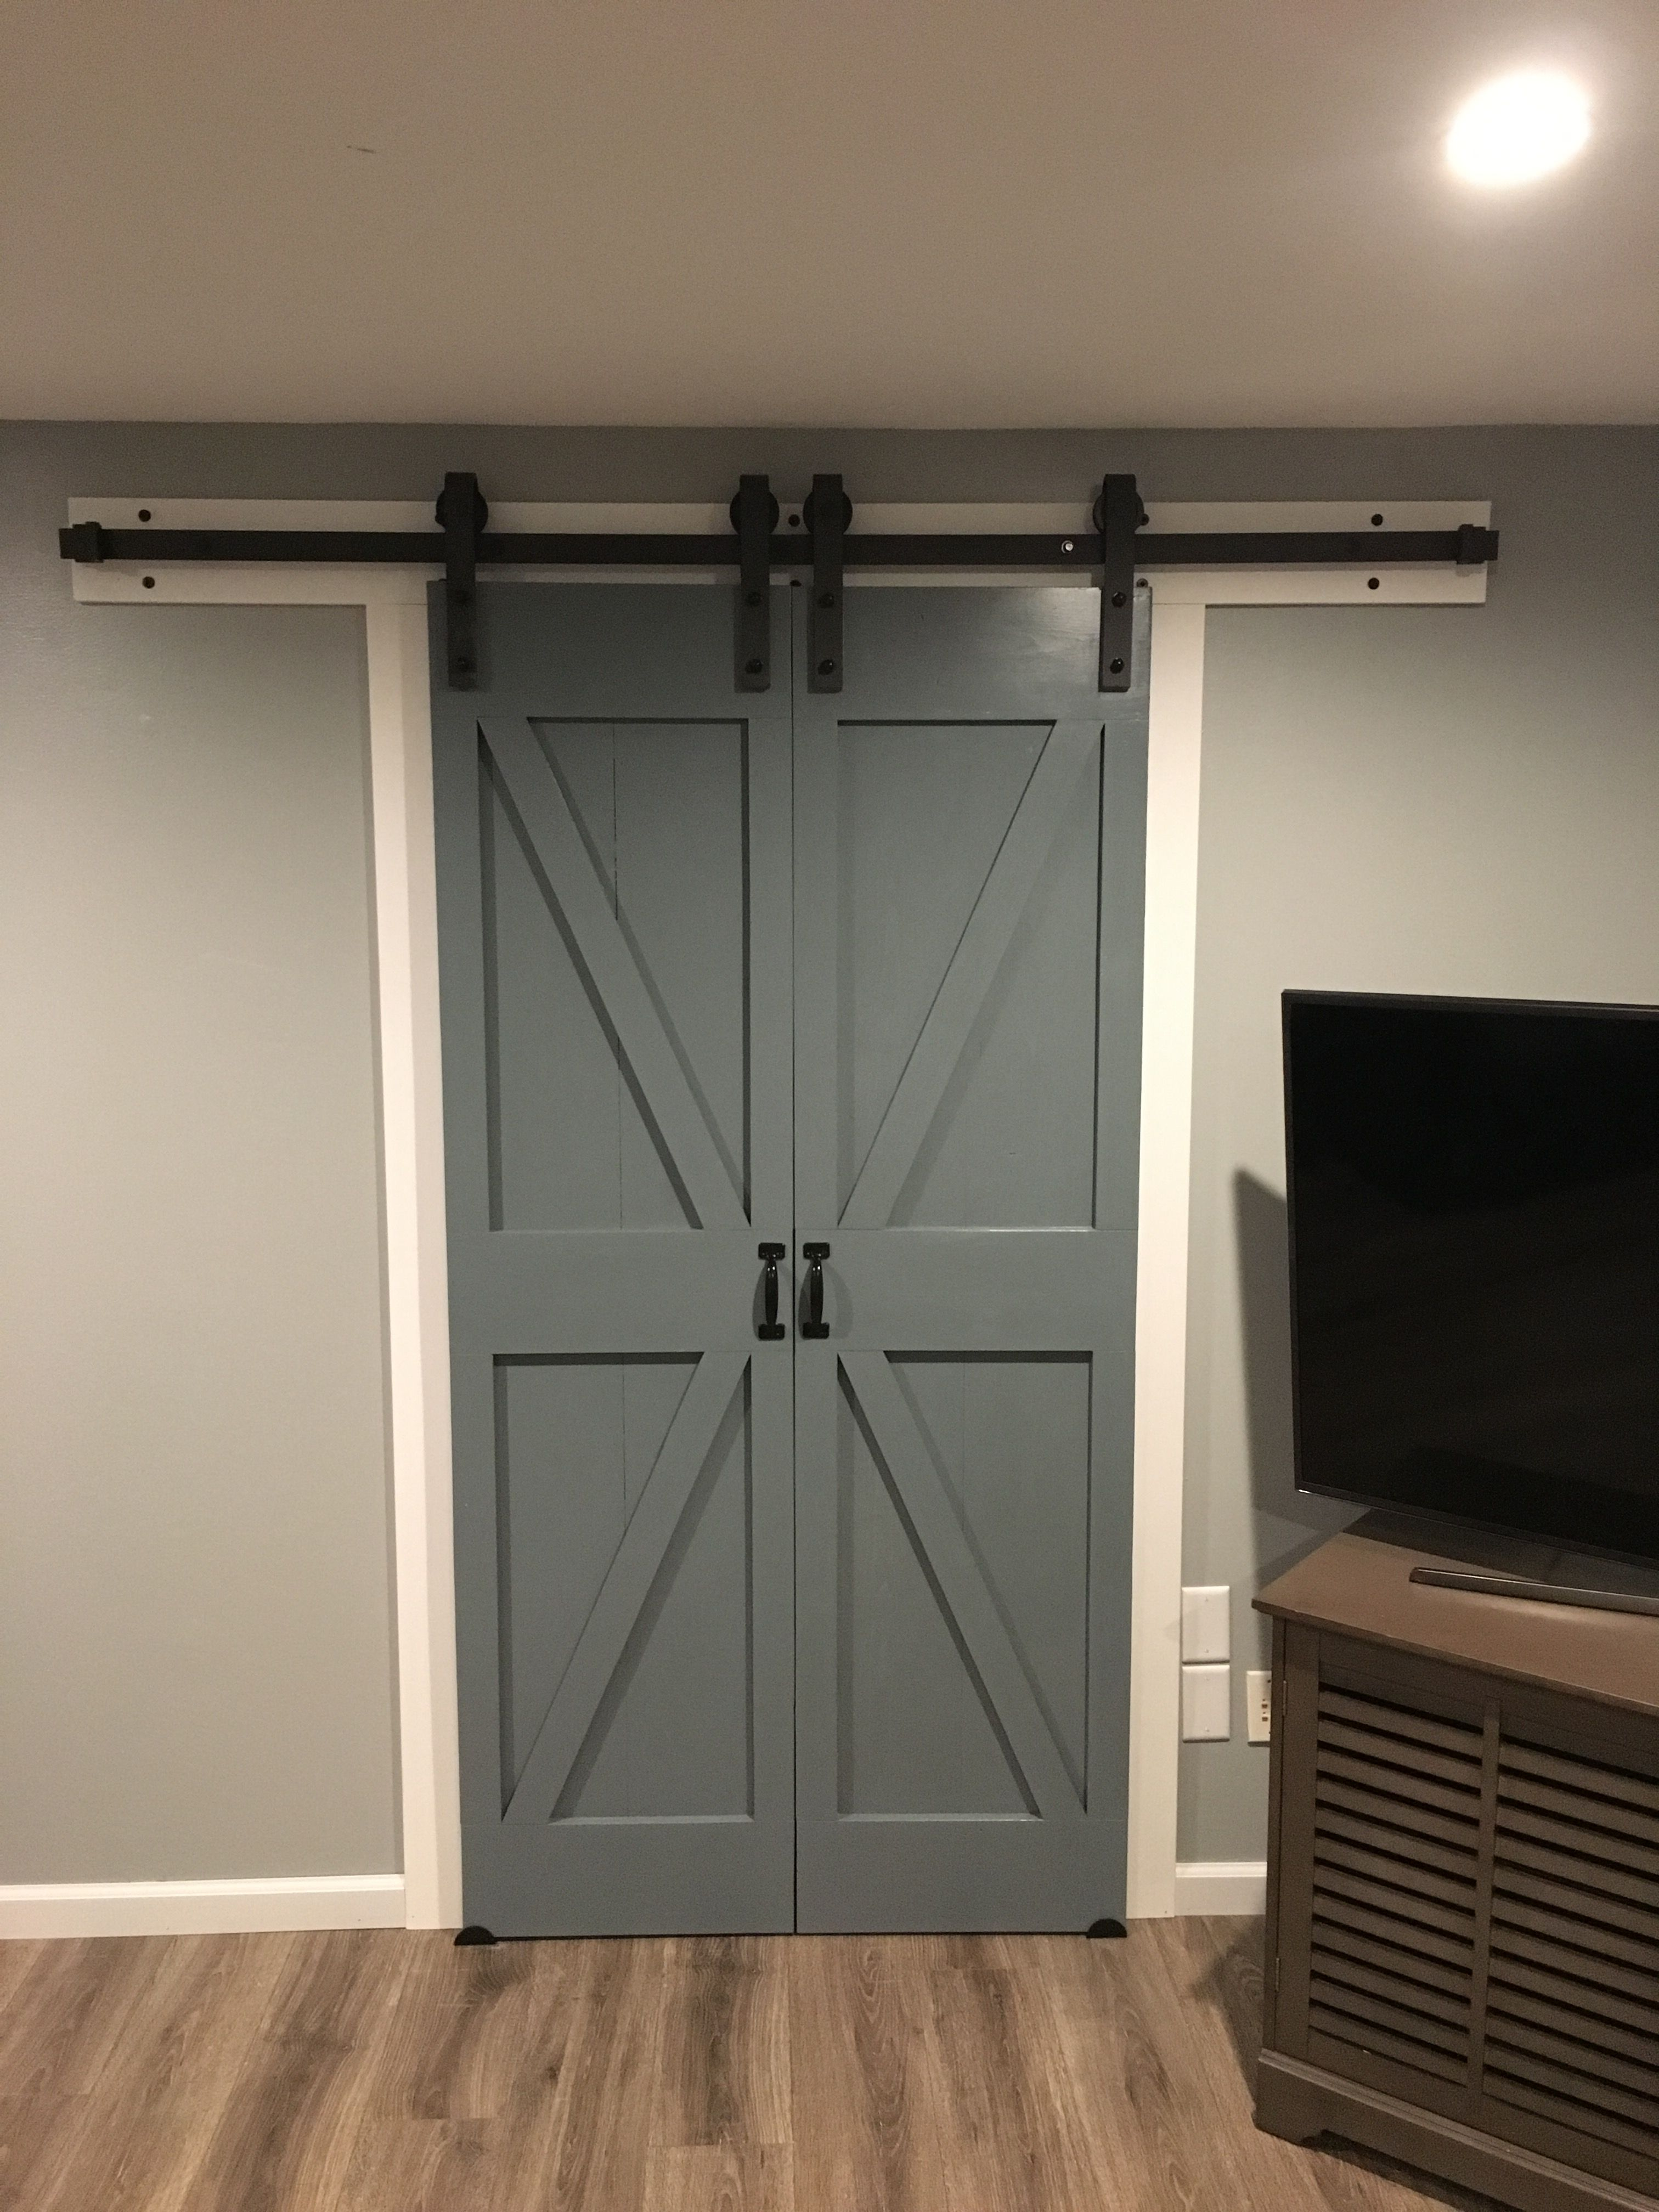 Double Barn Doors For A Closet In Our House Double Barn Doors Diy Barn Door Barn Door Closet